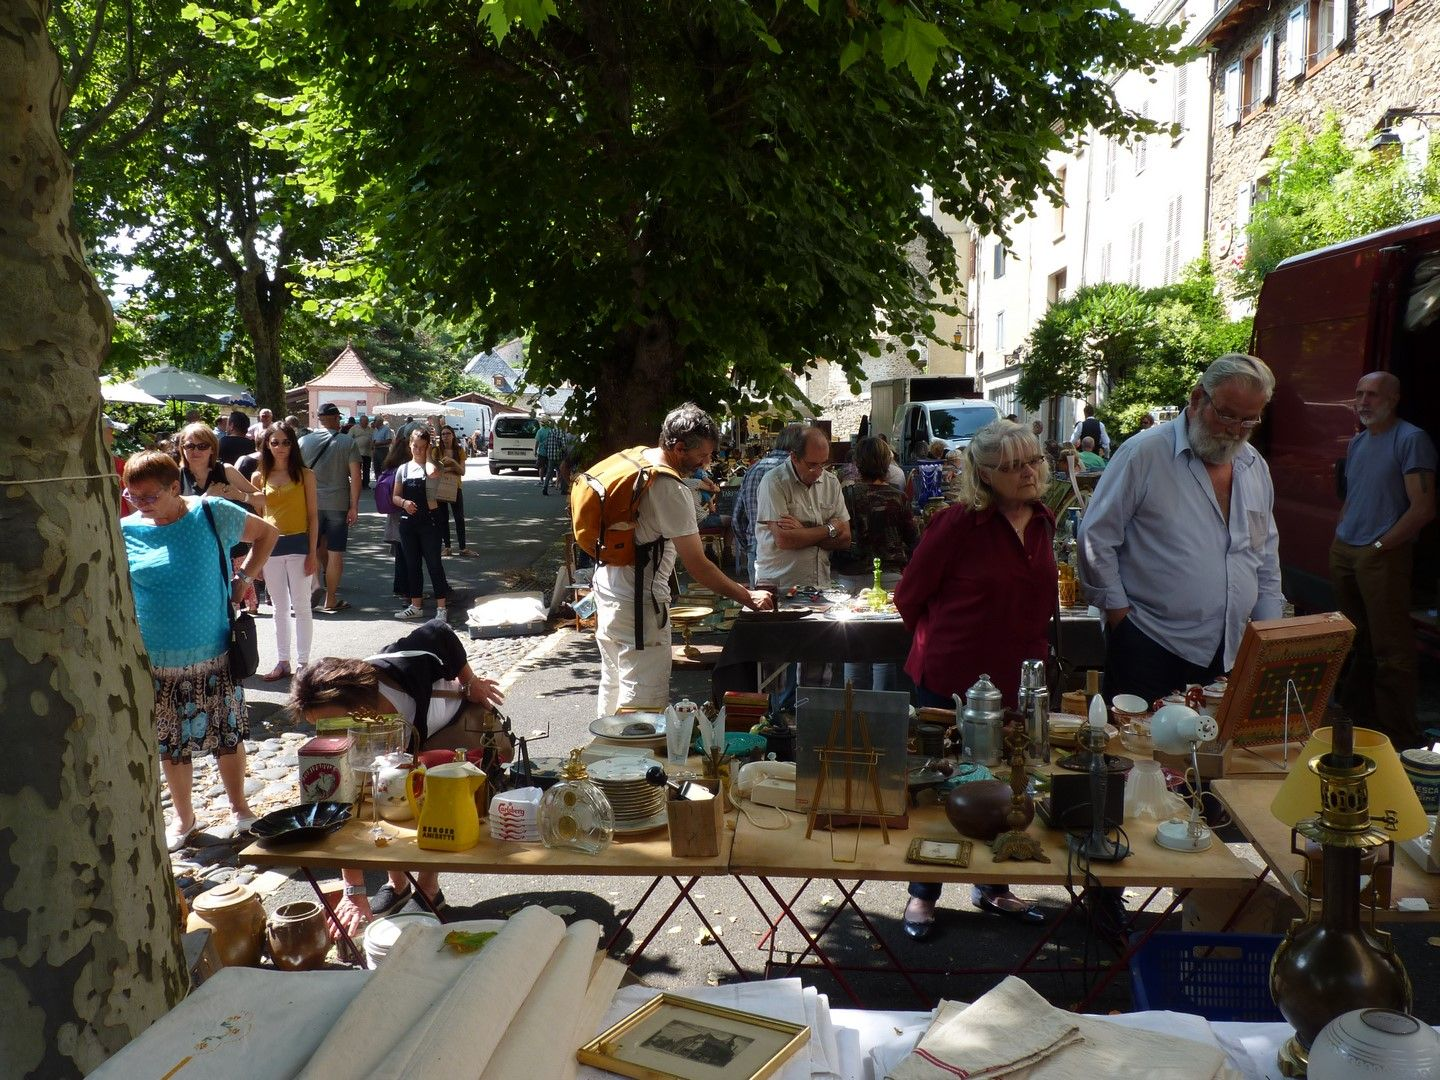 Belle Brocante Dans Le Village De Blesble Region Auvergne France Juillet 2016 Photo M Tournebize Auvergne Brocante Clermont Ferrand